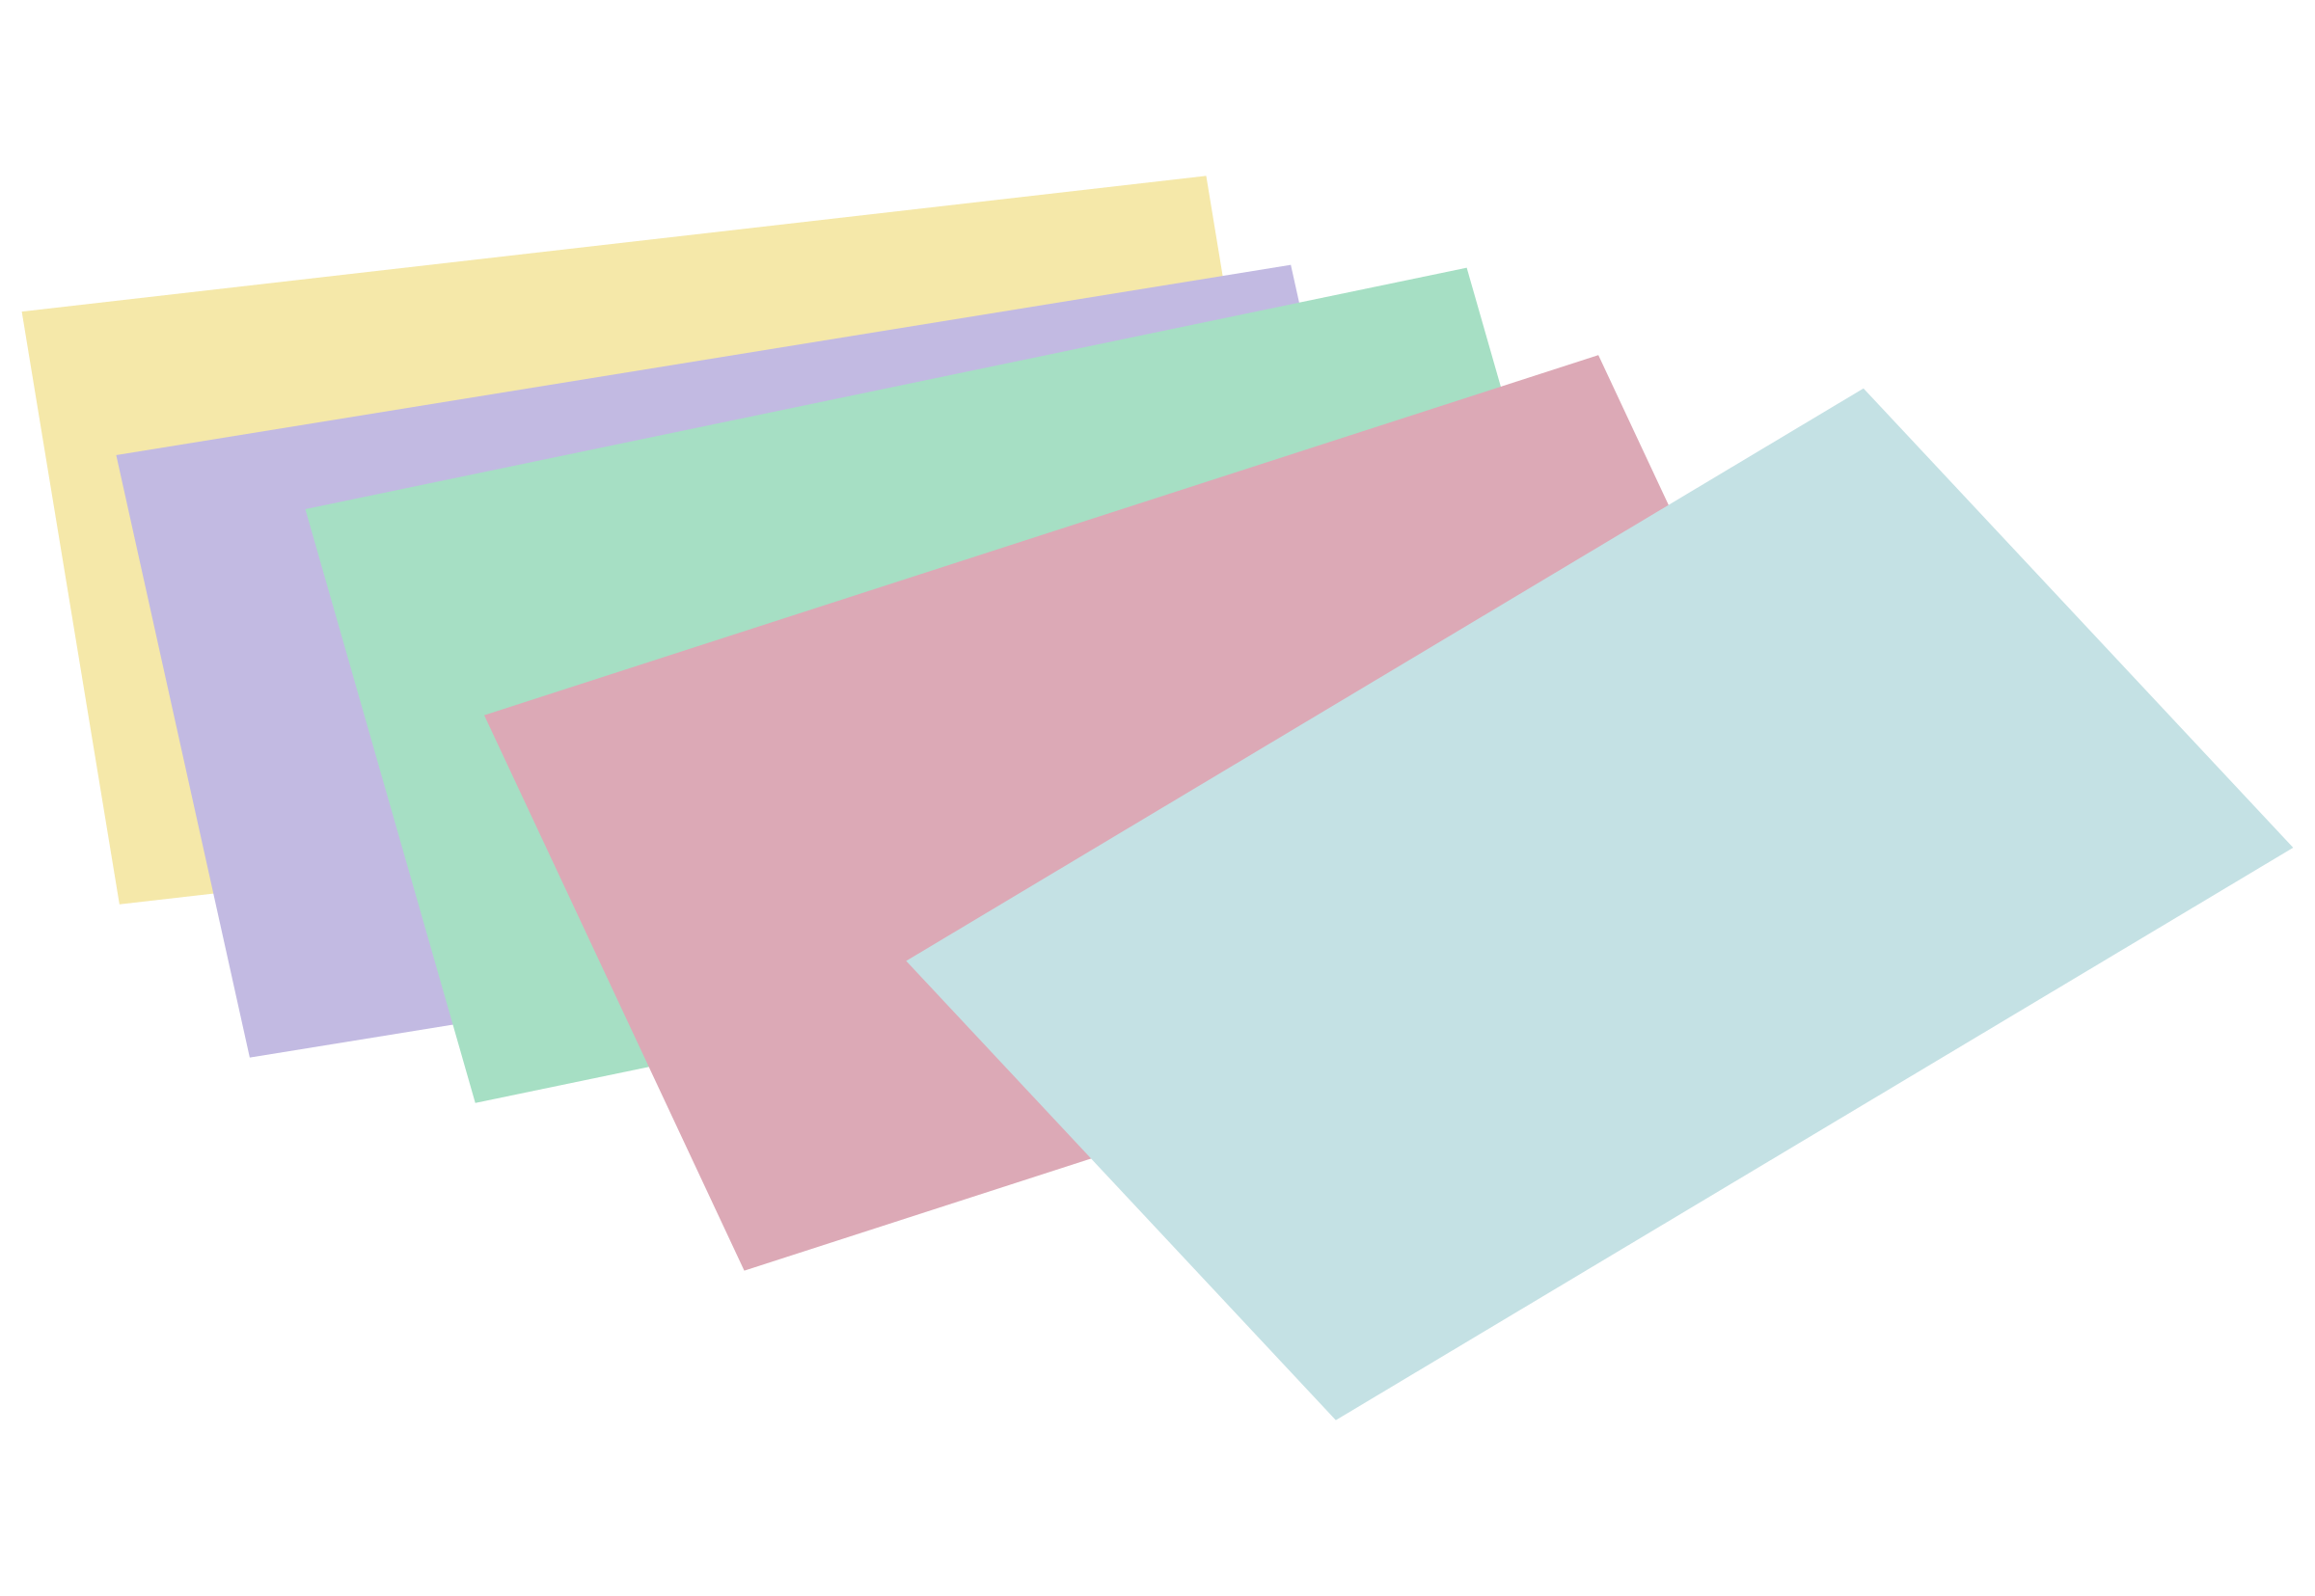 Note card clipart clipart images gallery for free download.